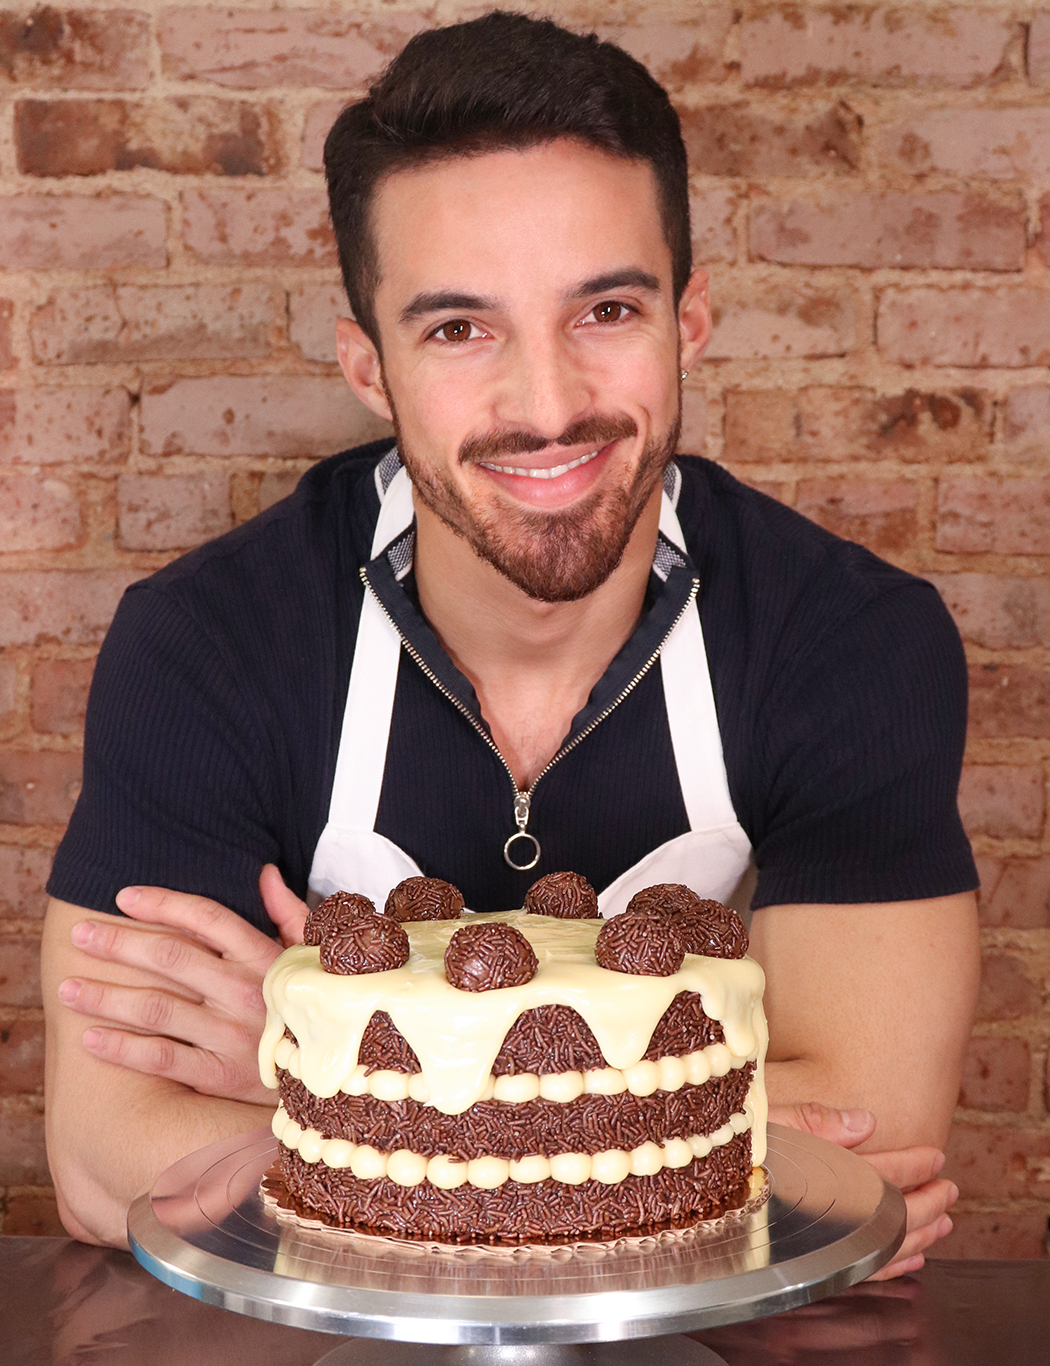 Vitor Cavalcante – Cakes by Vitor